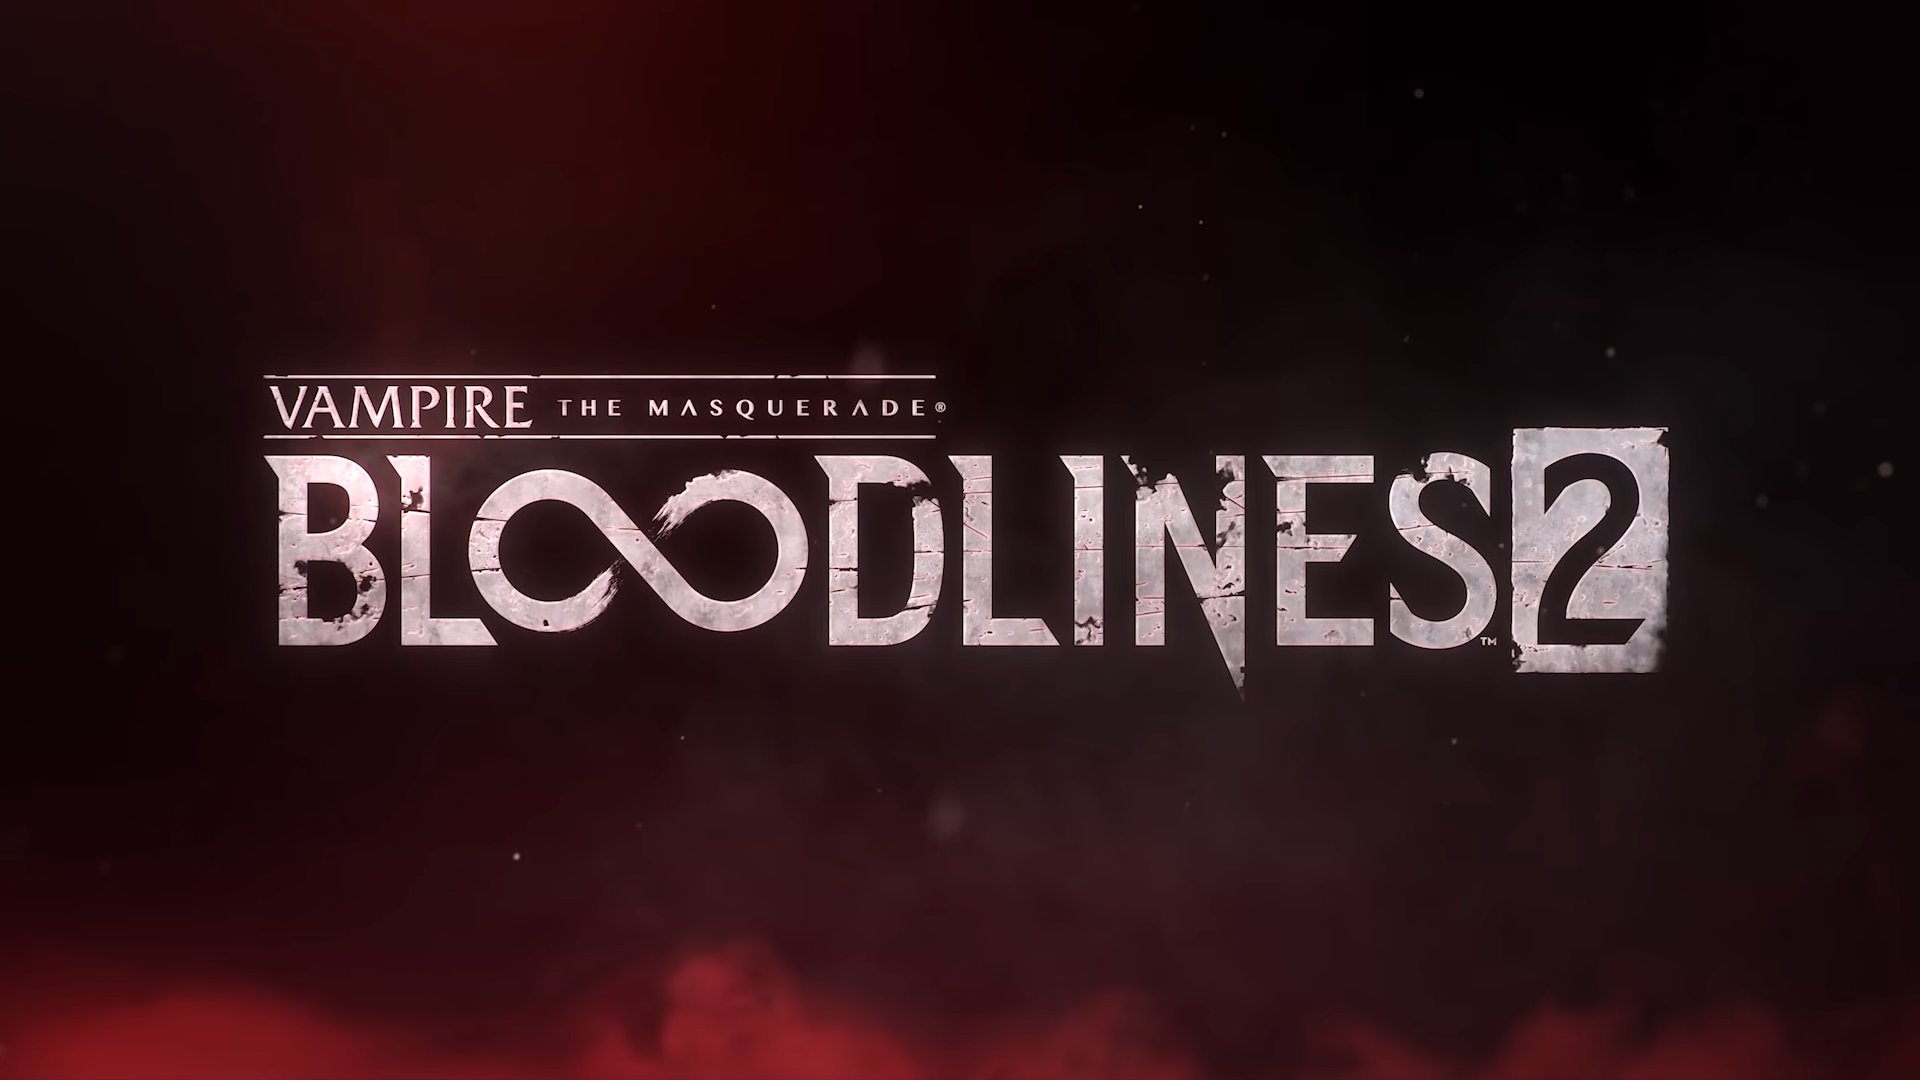 Are you ready? Vampire: the Masquerade Bloodlines 2 announced Header Image